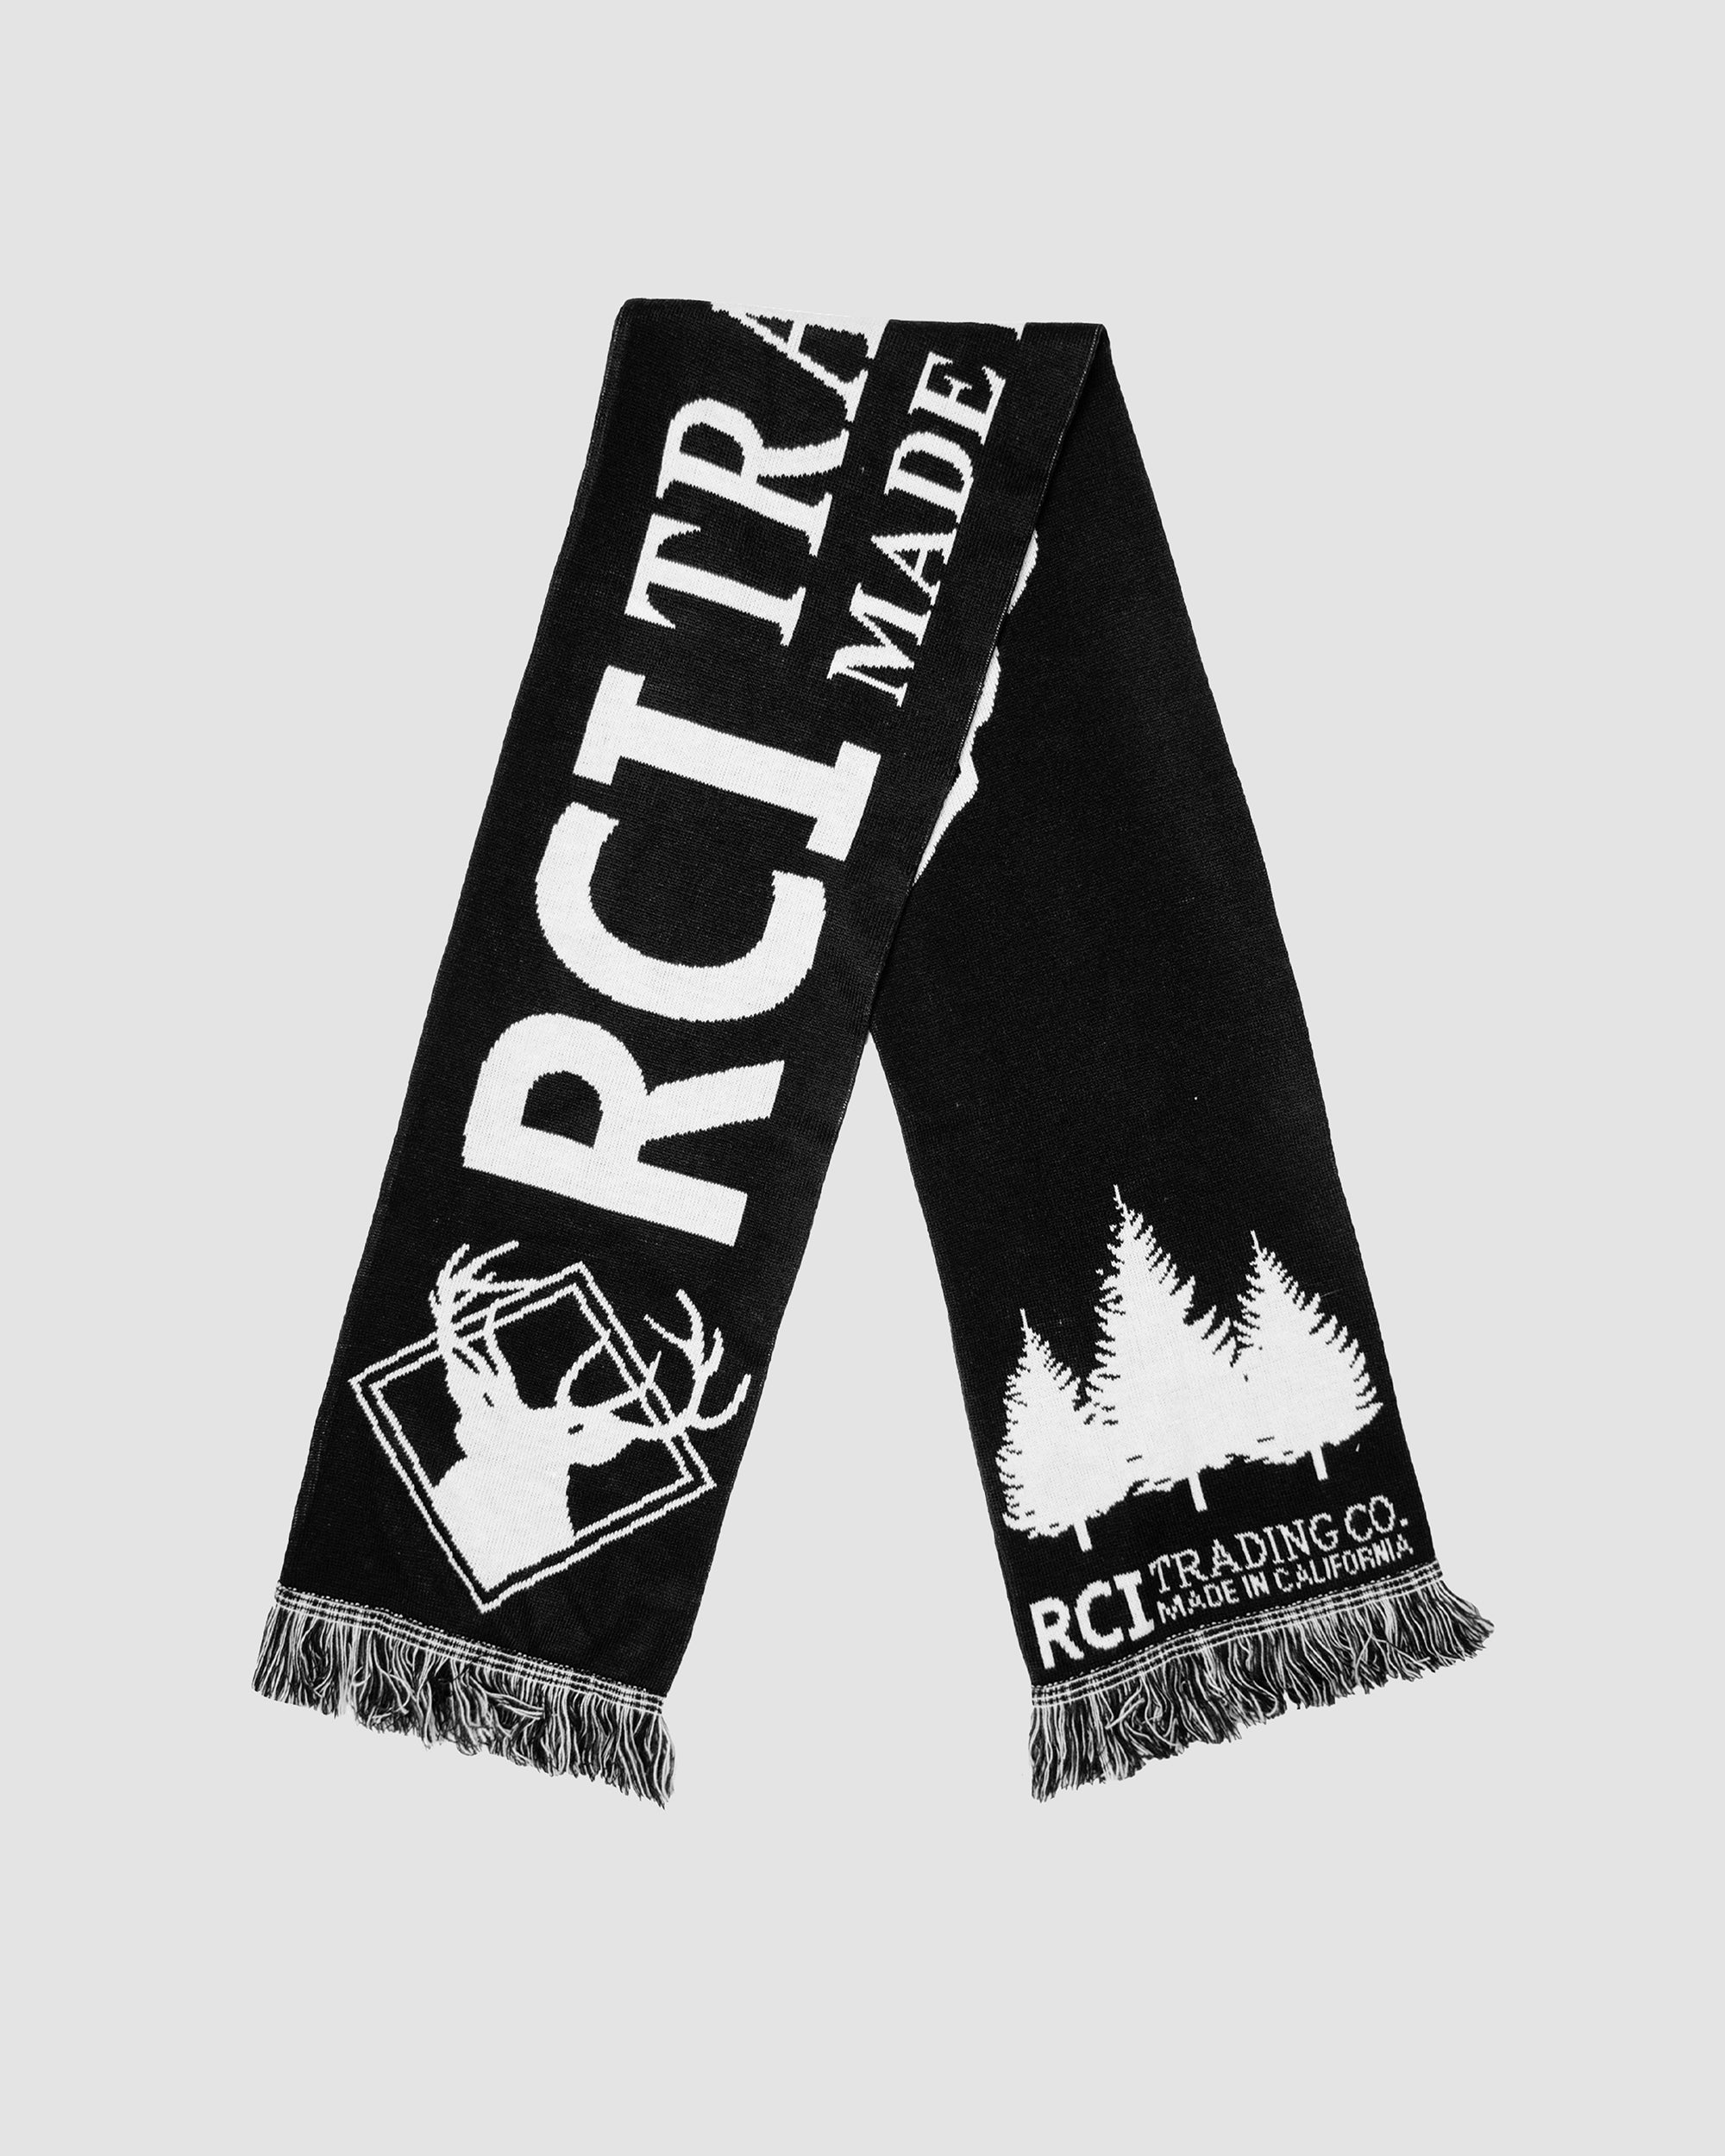 RCI Trading Co Scarf in Black